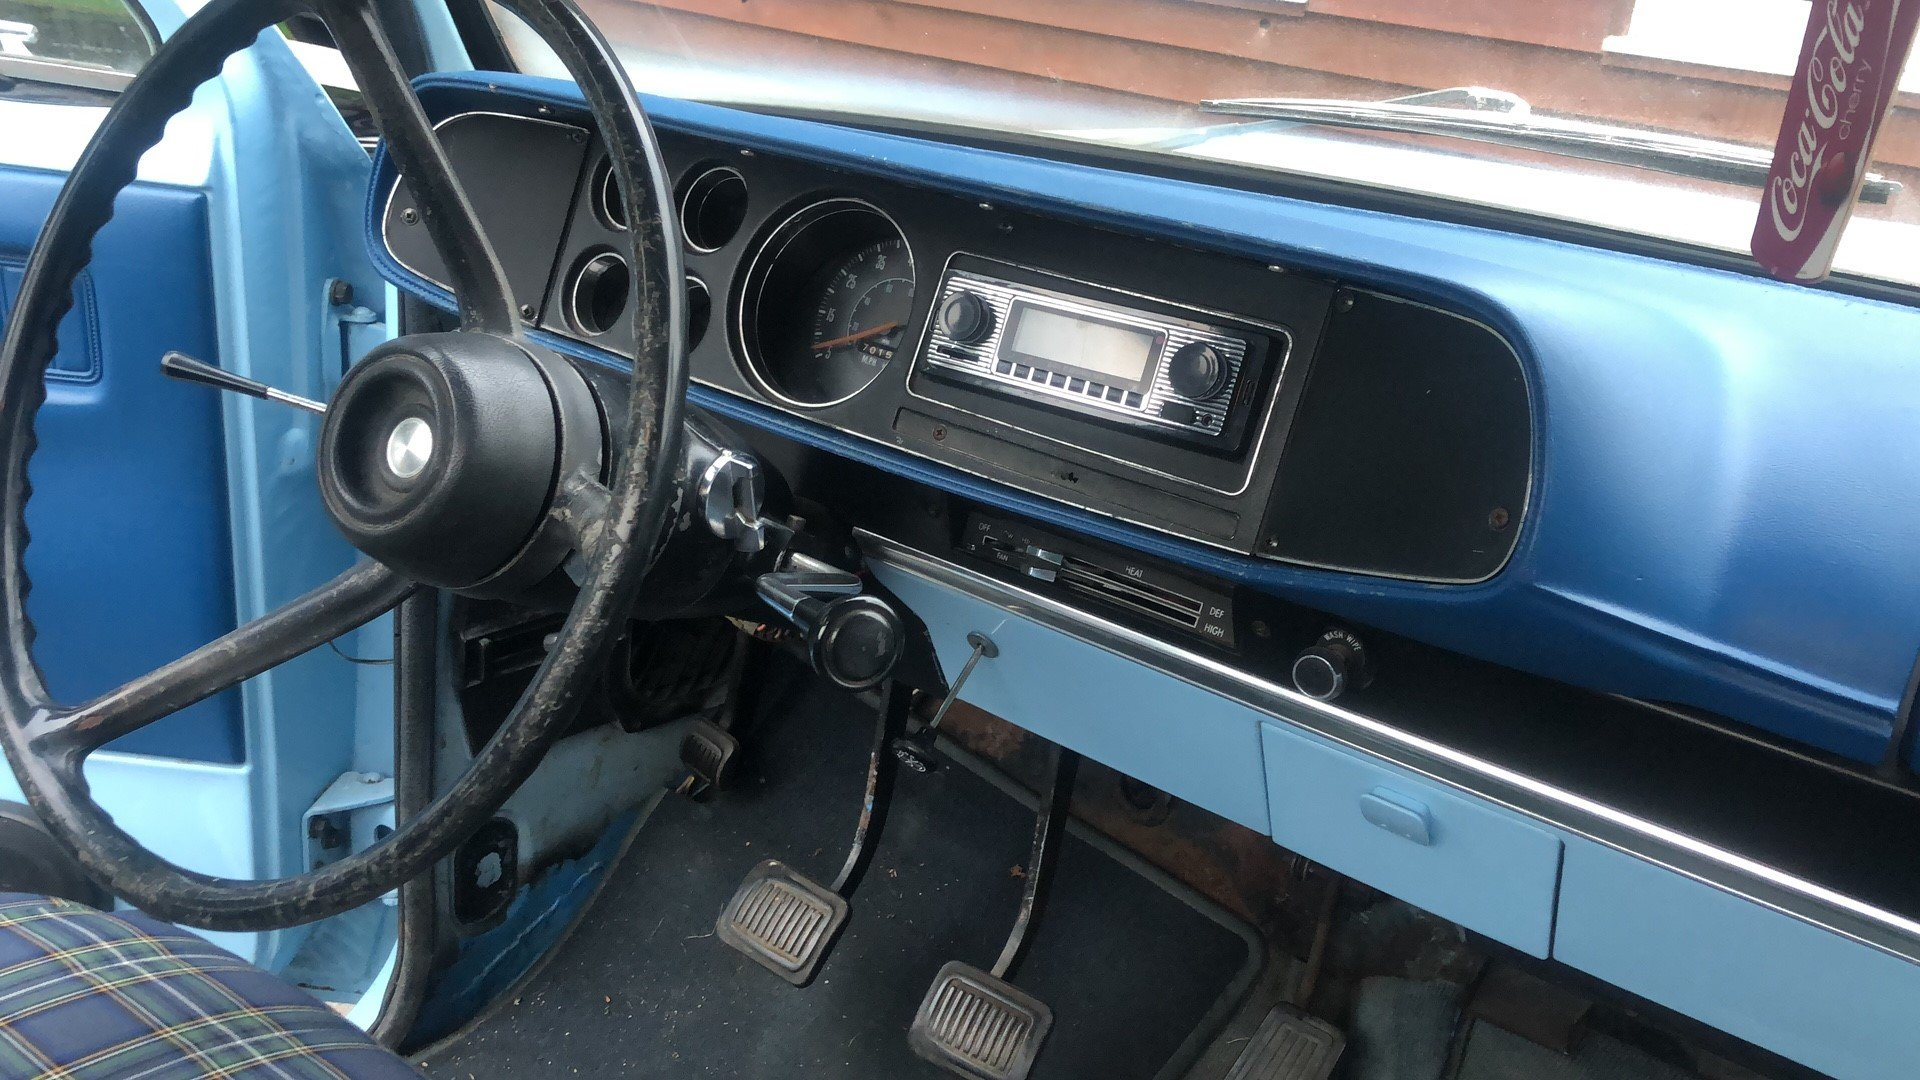 1977 Dodge D100 - Pickup For Sale (picture 4 of 6)